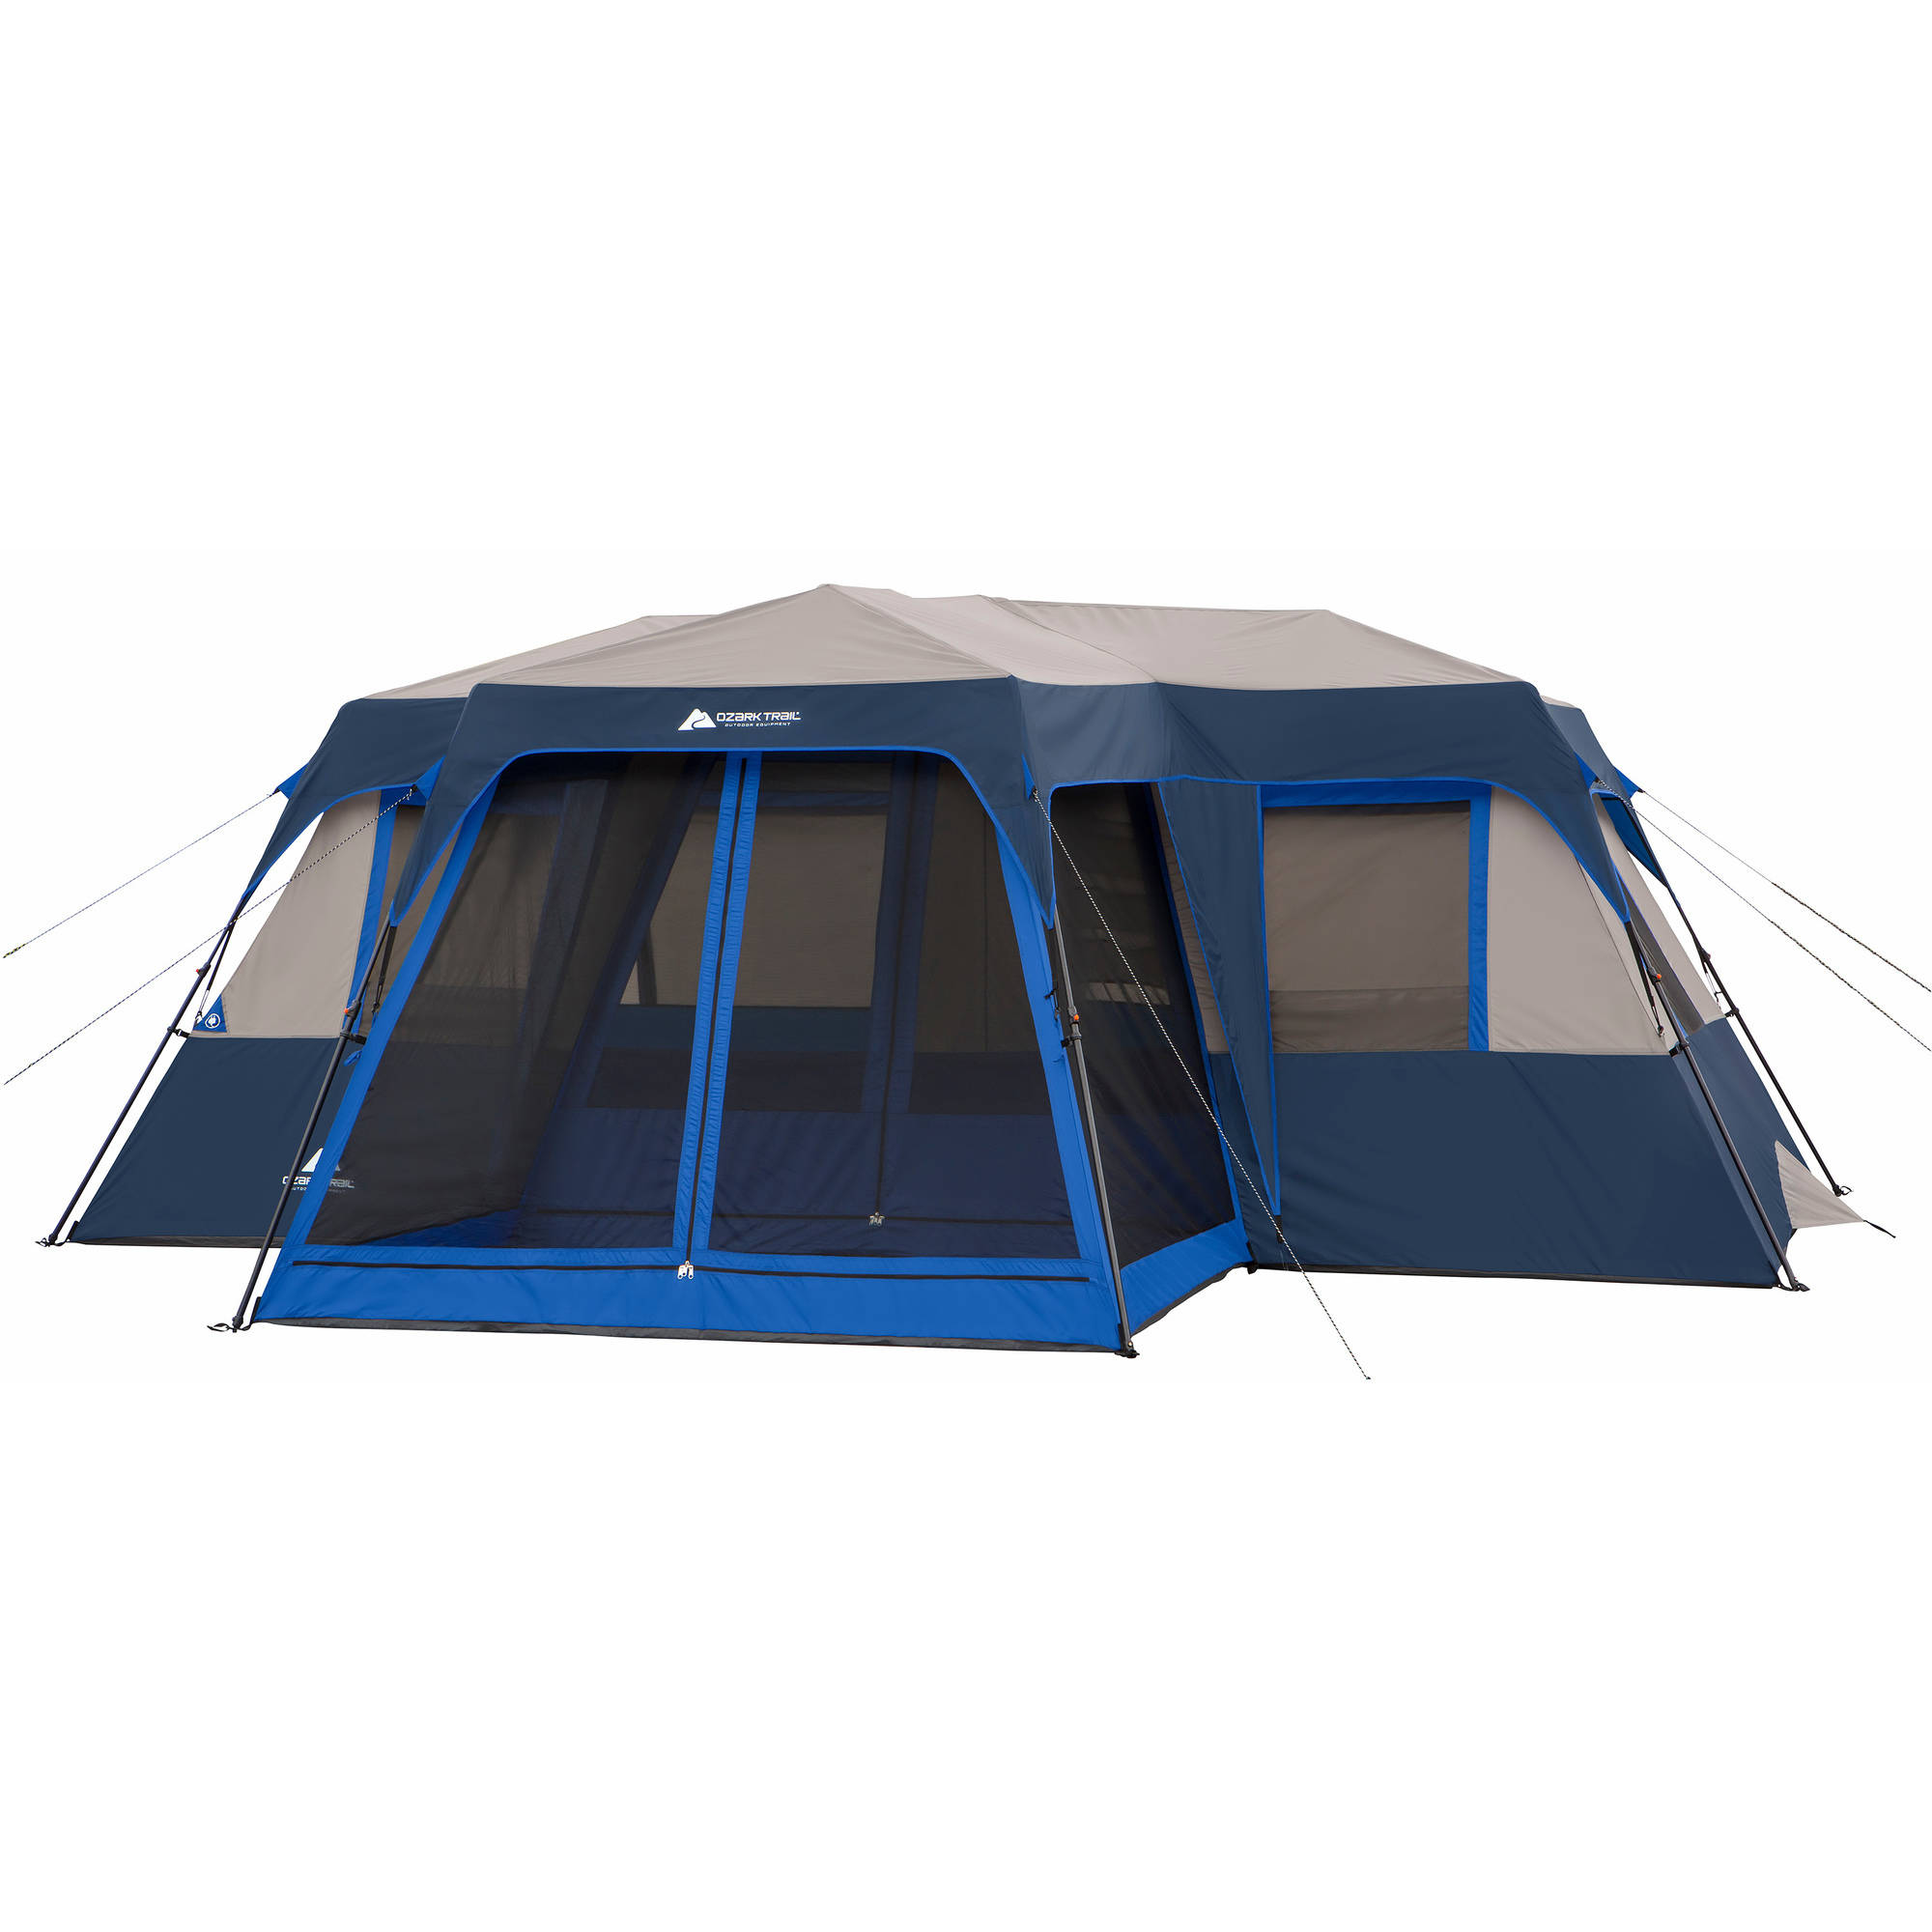 Ozark Trail 12 Person 2 Room Instant Cabin Tent with Screen Room by